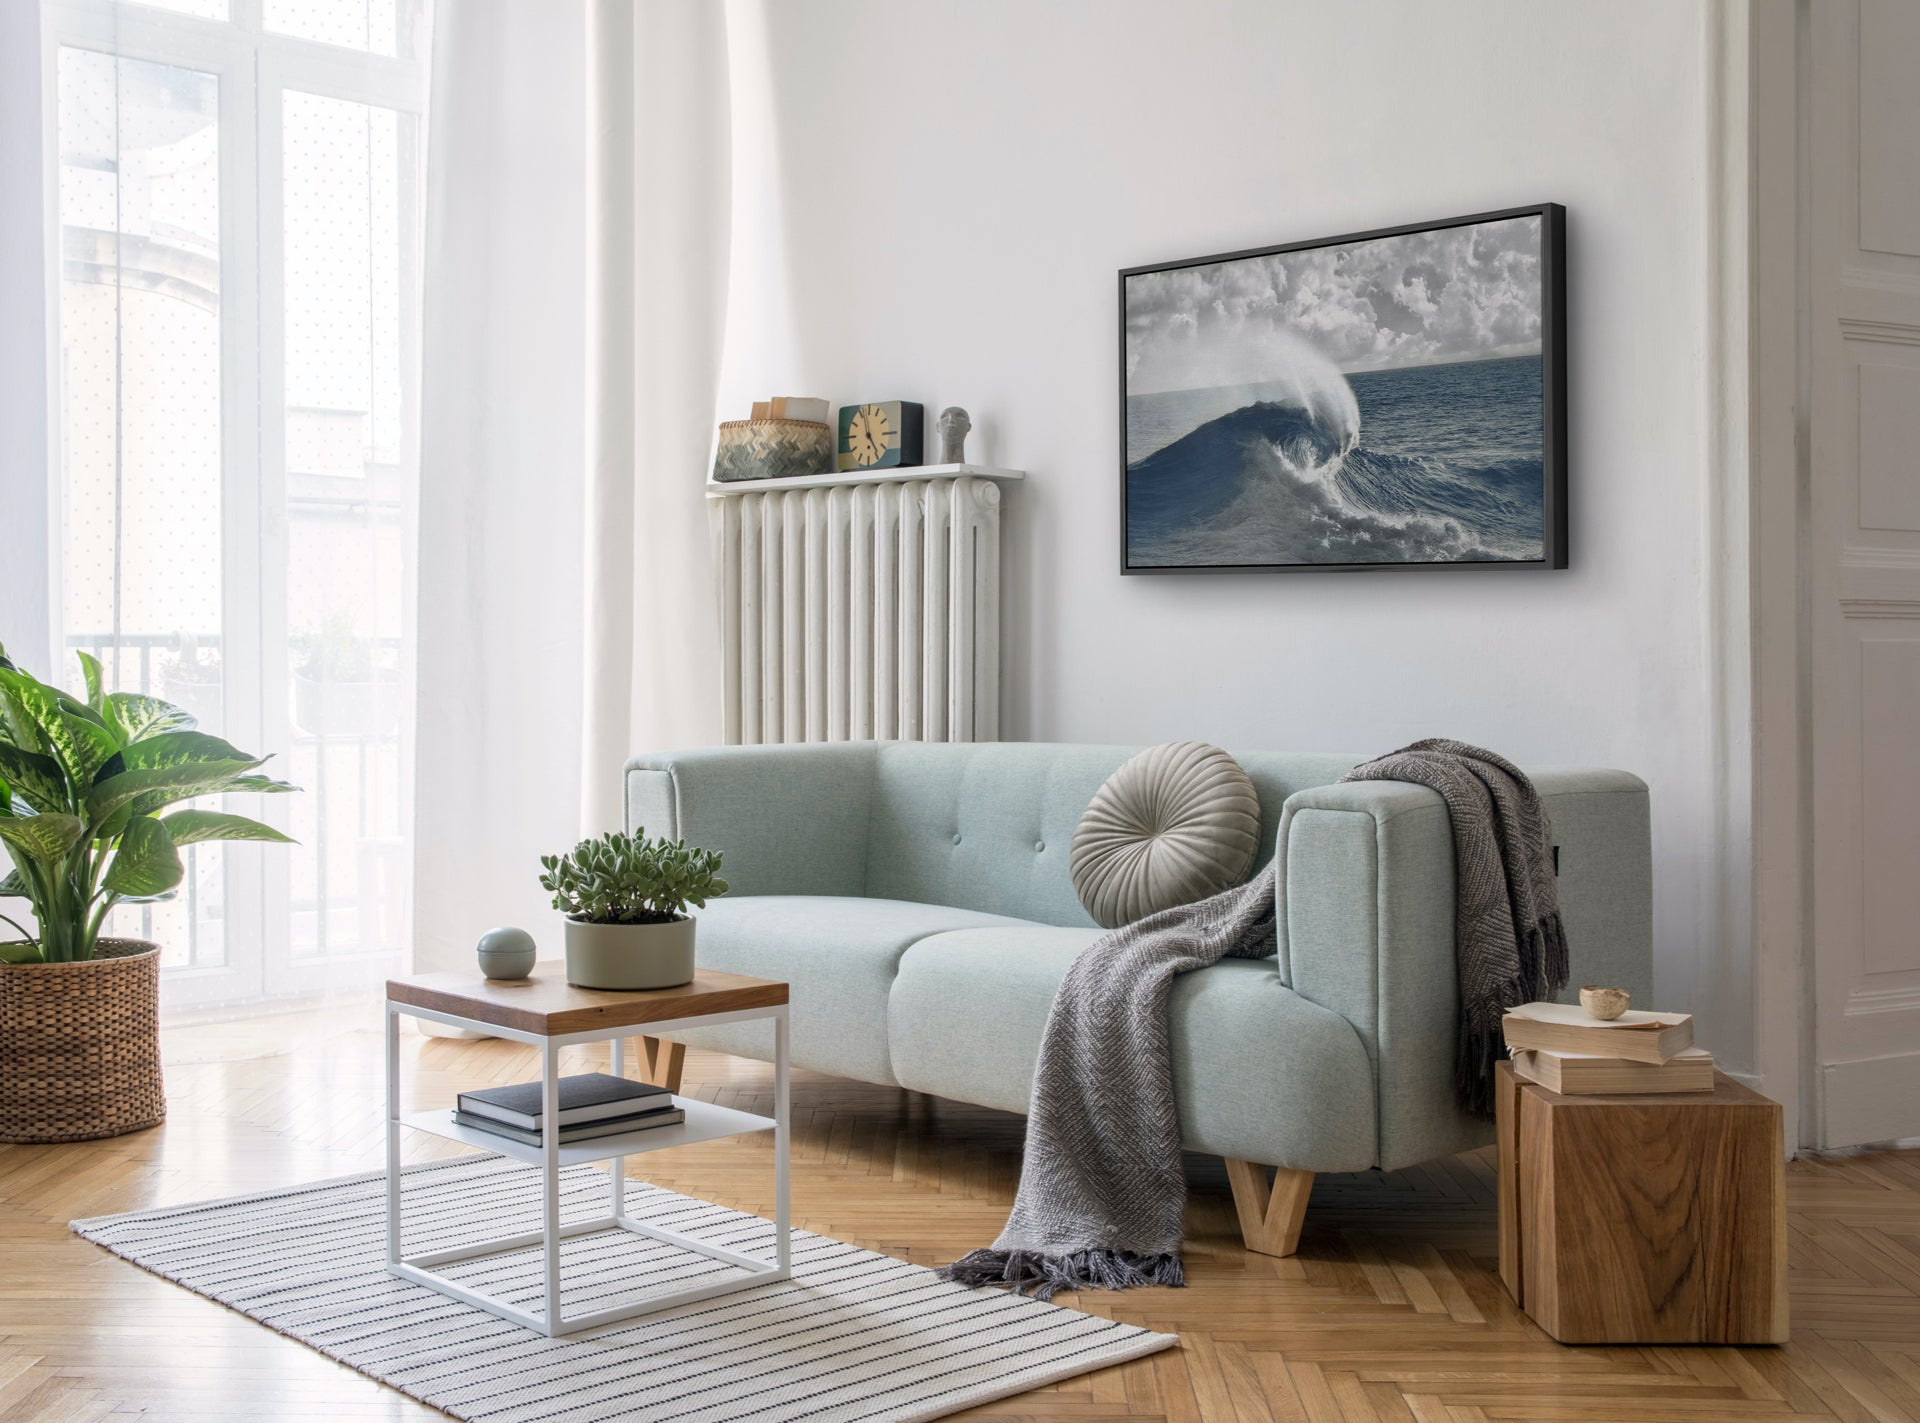 Ocean wave art in living room